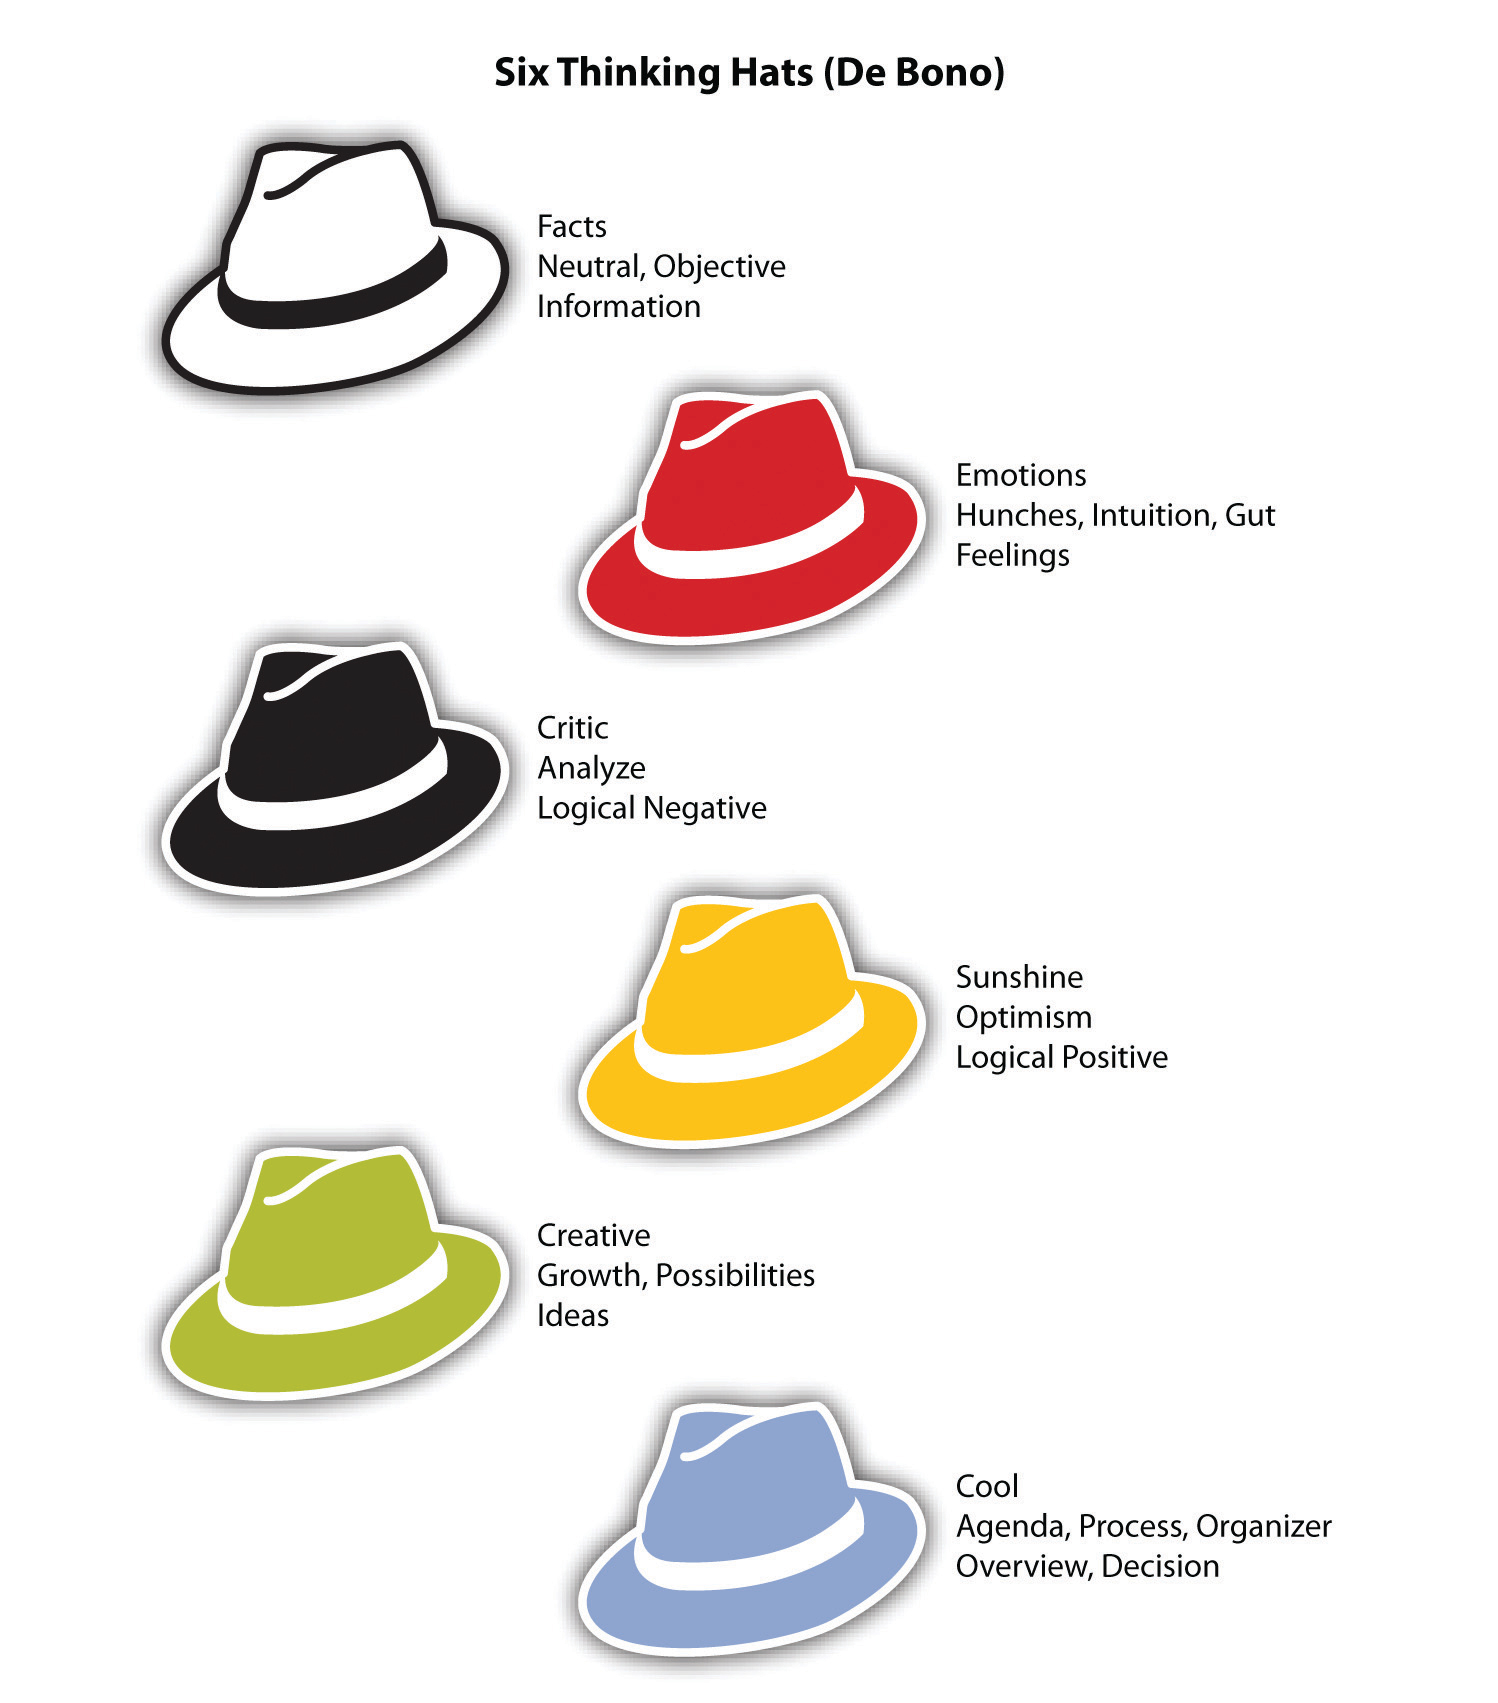 Overcoming Serious Indecisiveness - home. ubalt.edu Pictures of six thinking hats